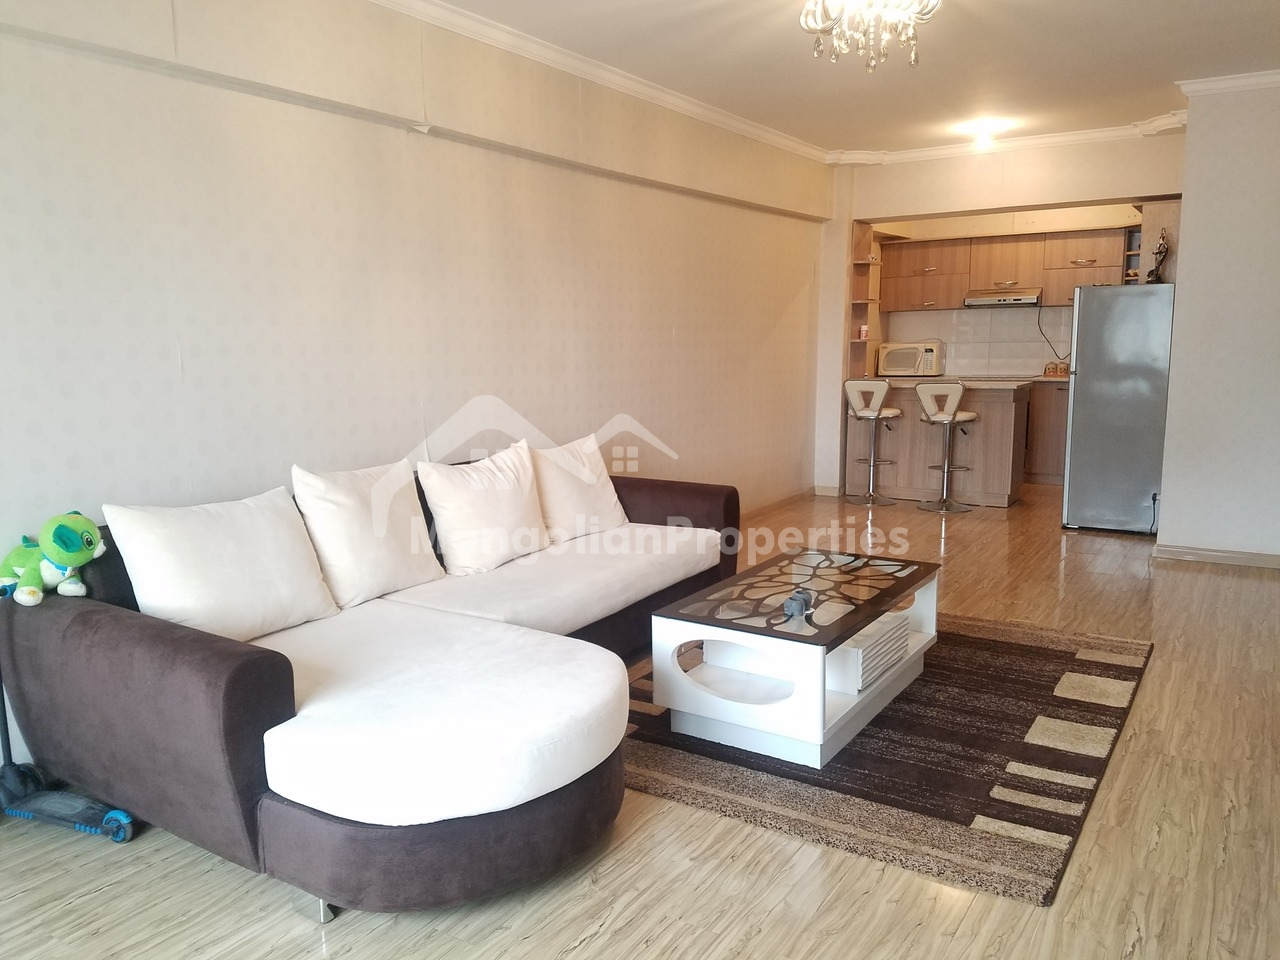 AMAZING LOCATION IN THE CENTER  OF THE CITY! 1 BEDROOM  AT NOMUN APARTMENTS